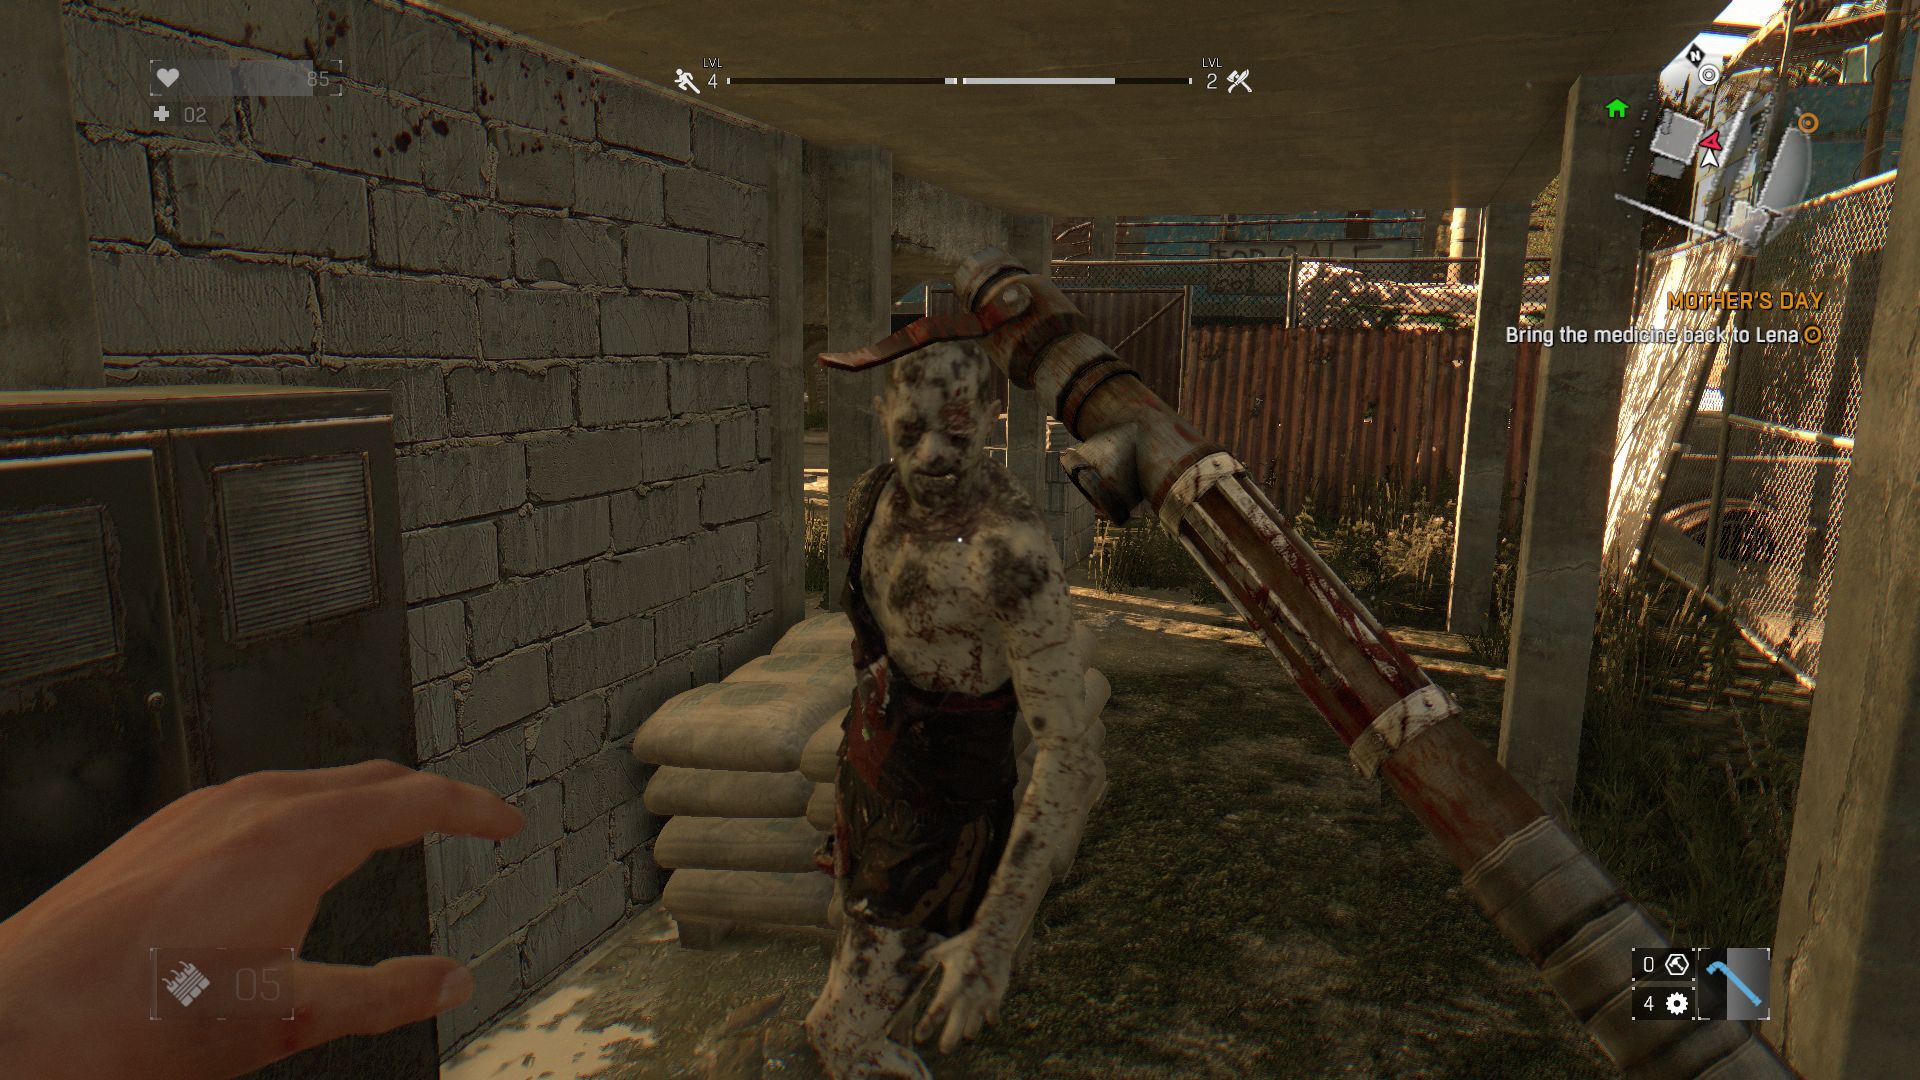 dying_light_review_N2_screenshot_PC (10)